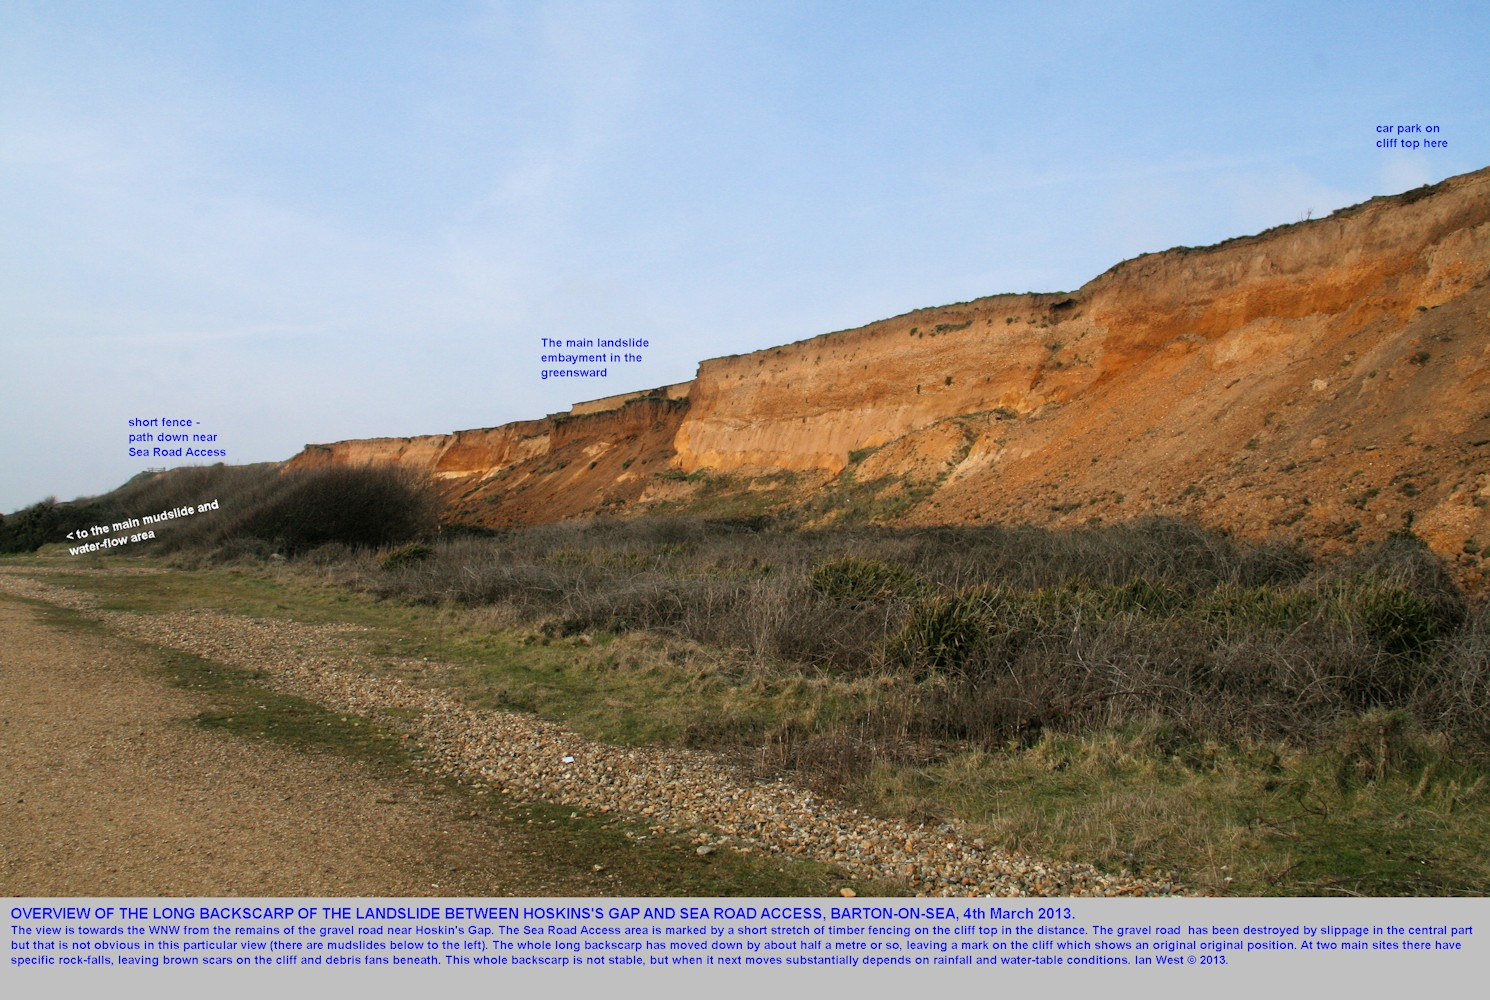 A view from mid-cliff area of the long backscarp of the Sea Road Access to Hoskin's Gap landslide, Barton-on-Sea, Hampshire, 4th October 2013